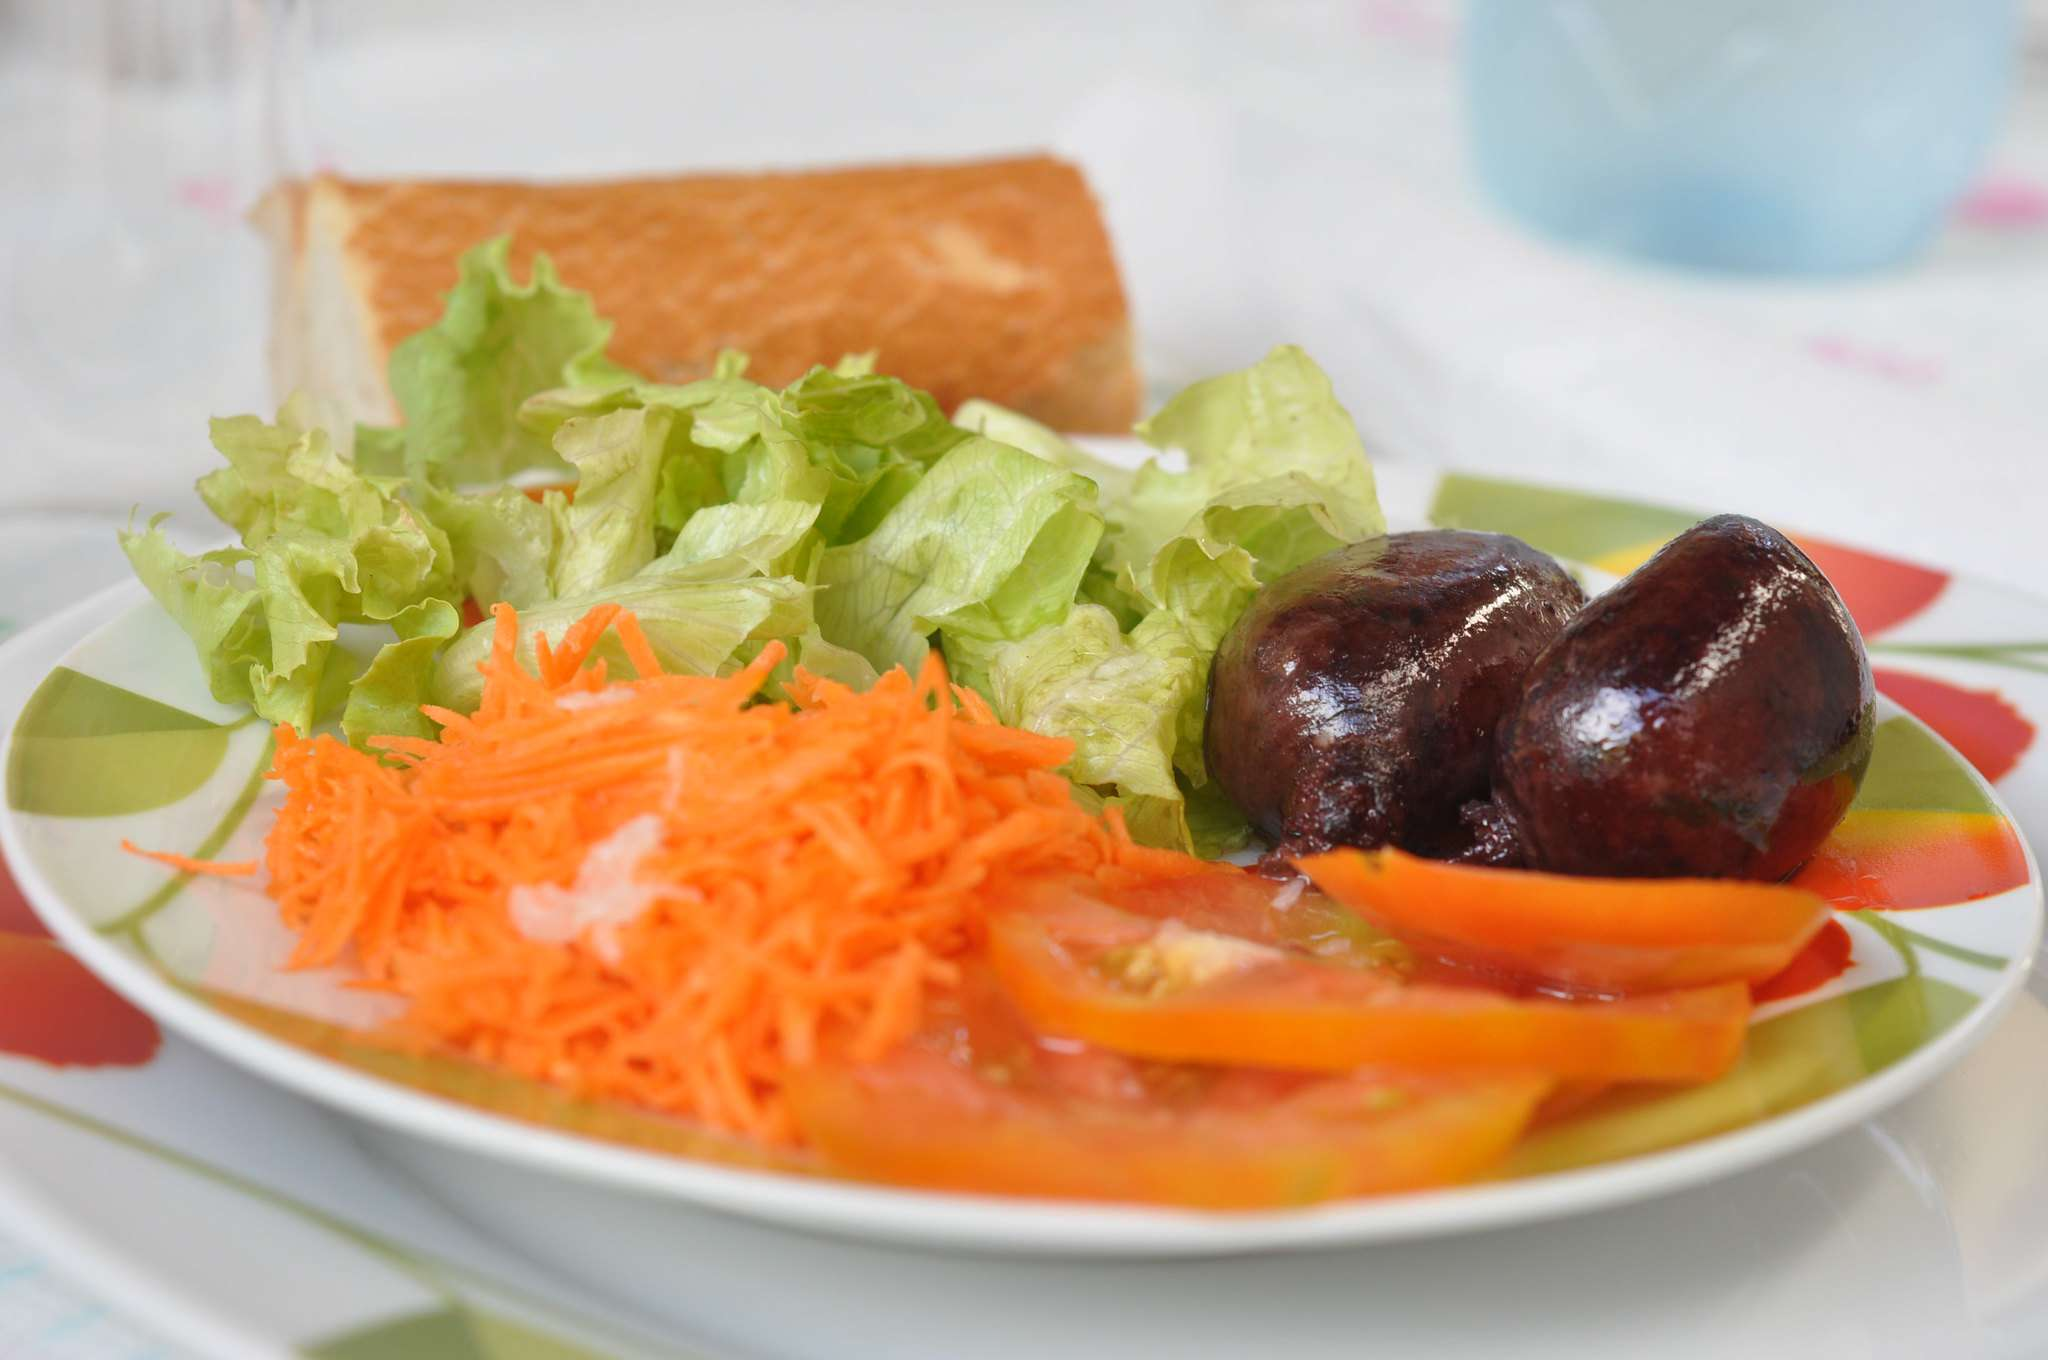 two small blood sausages on a plate with carrots, lettuce, tomatoes and a piece of bread